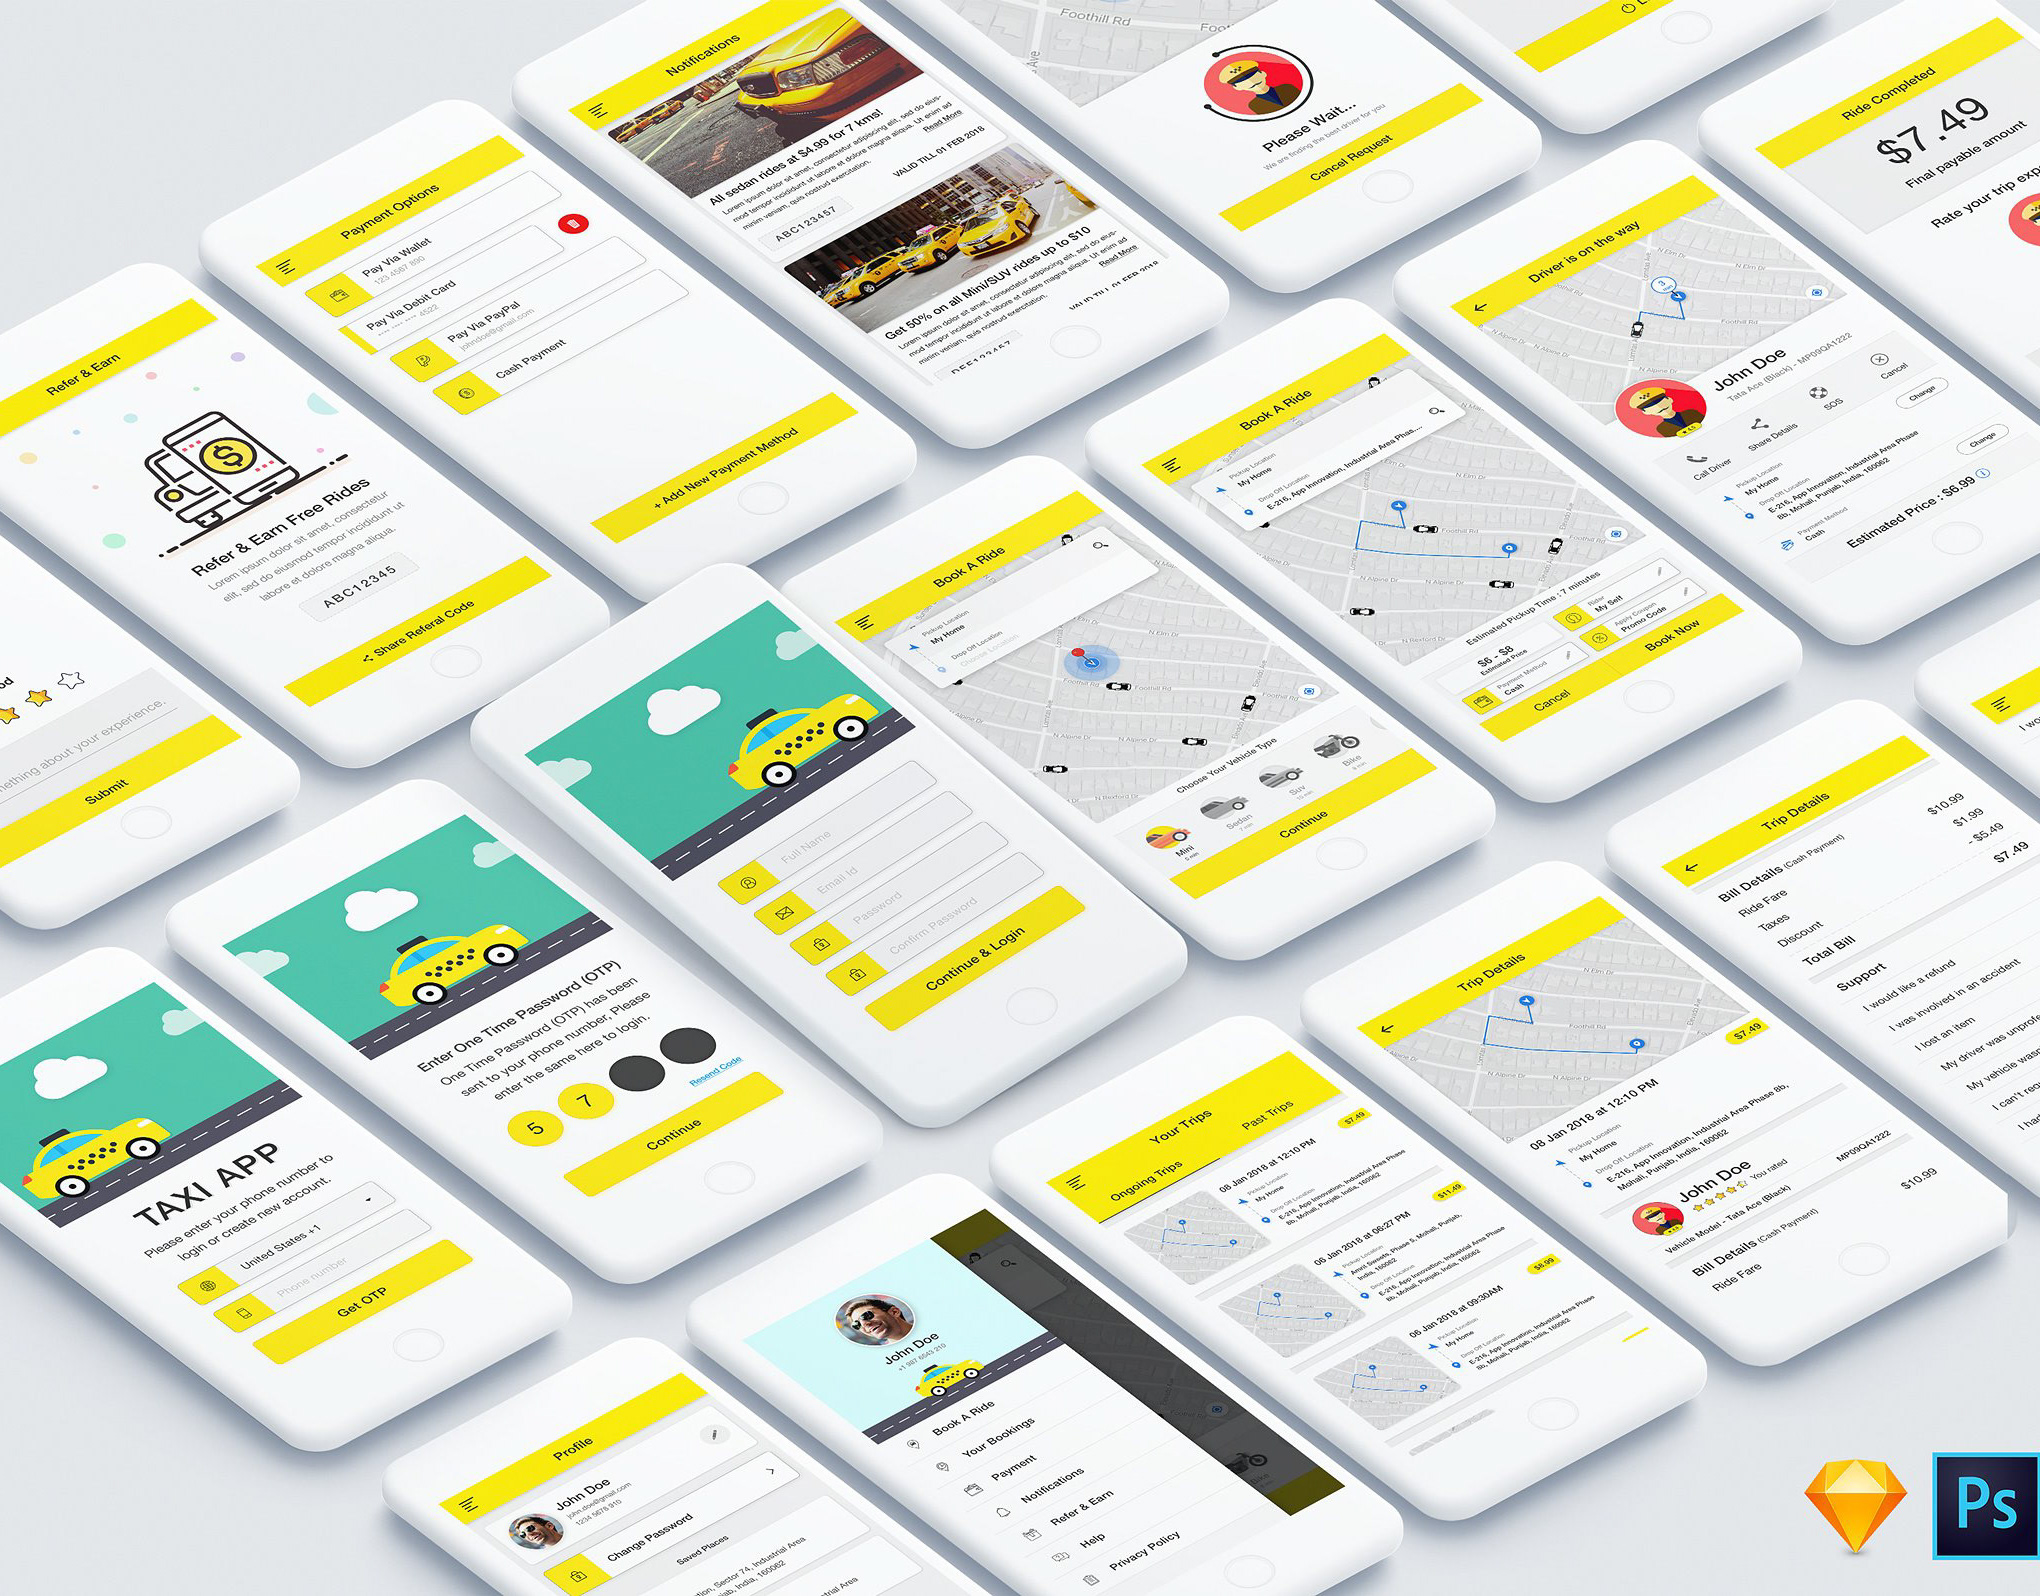 DEOUR - Webdesign Resources & Development - Taxi Booking App